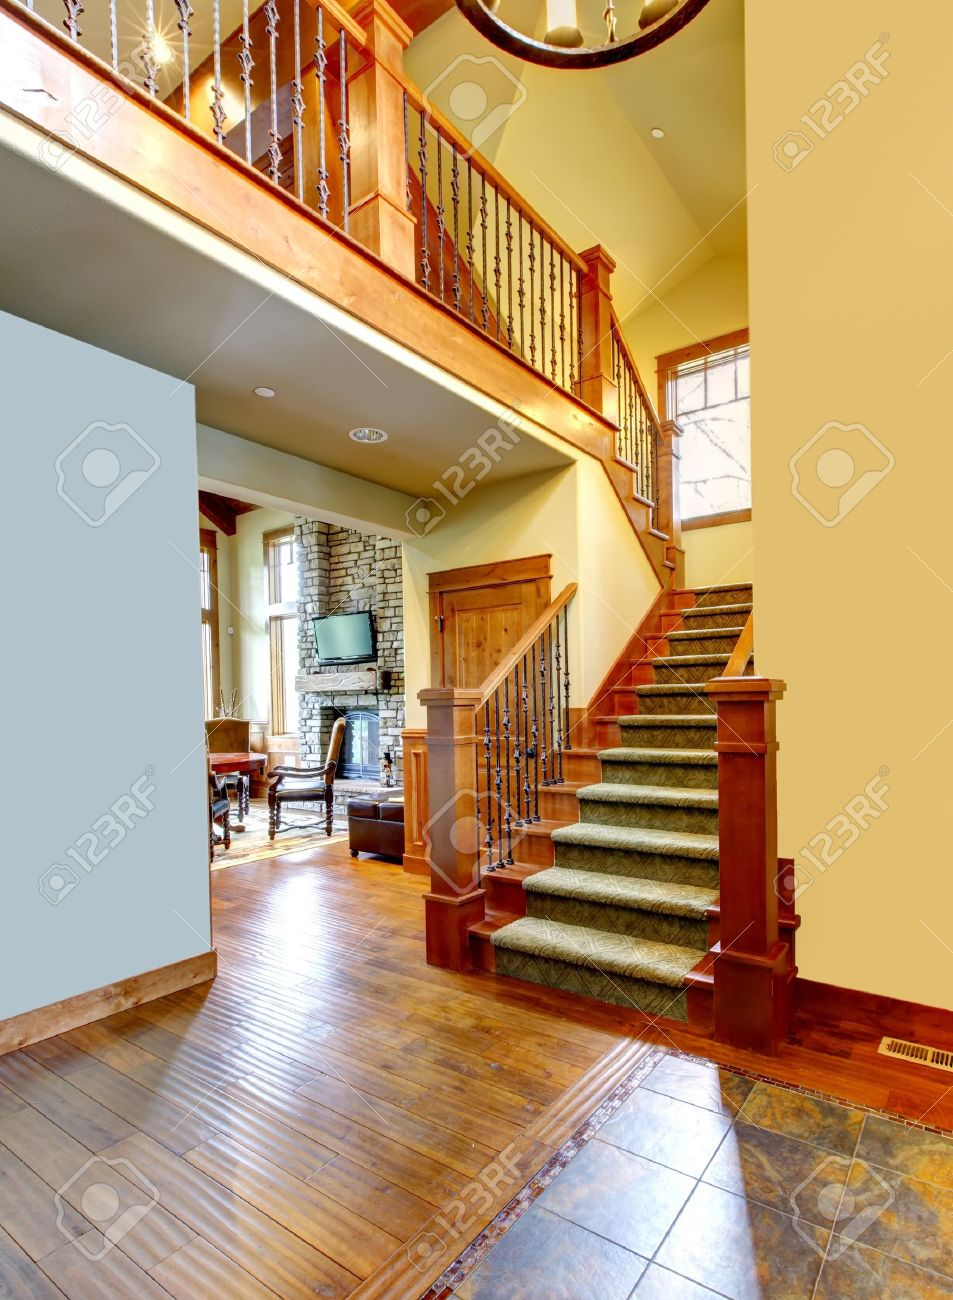 Mountain luxury home staircase with wood railings. Stock Photo - 16662817